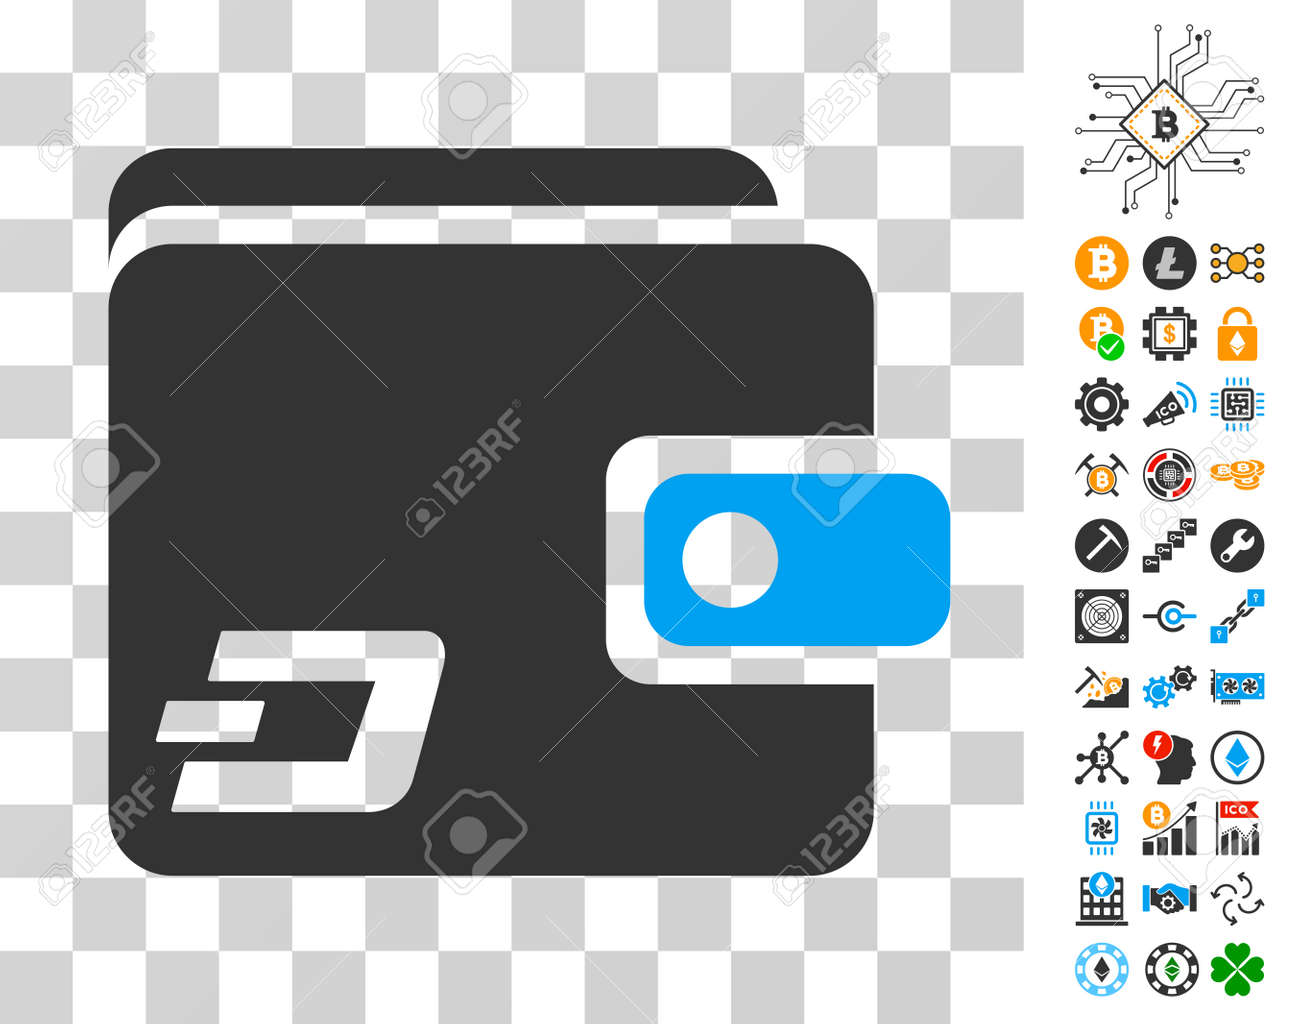 Dash Wallet icon with bonus bitcoin mining and blockchain pictograms